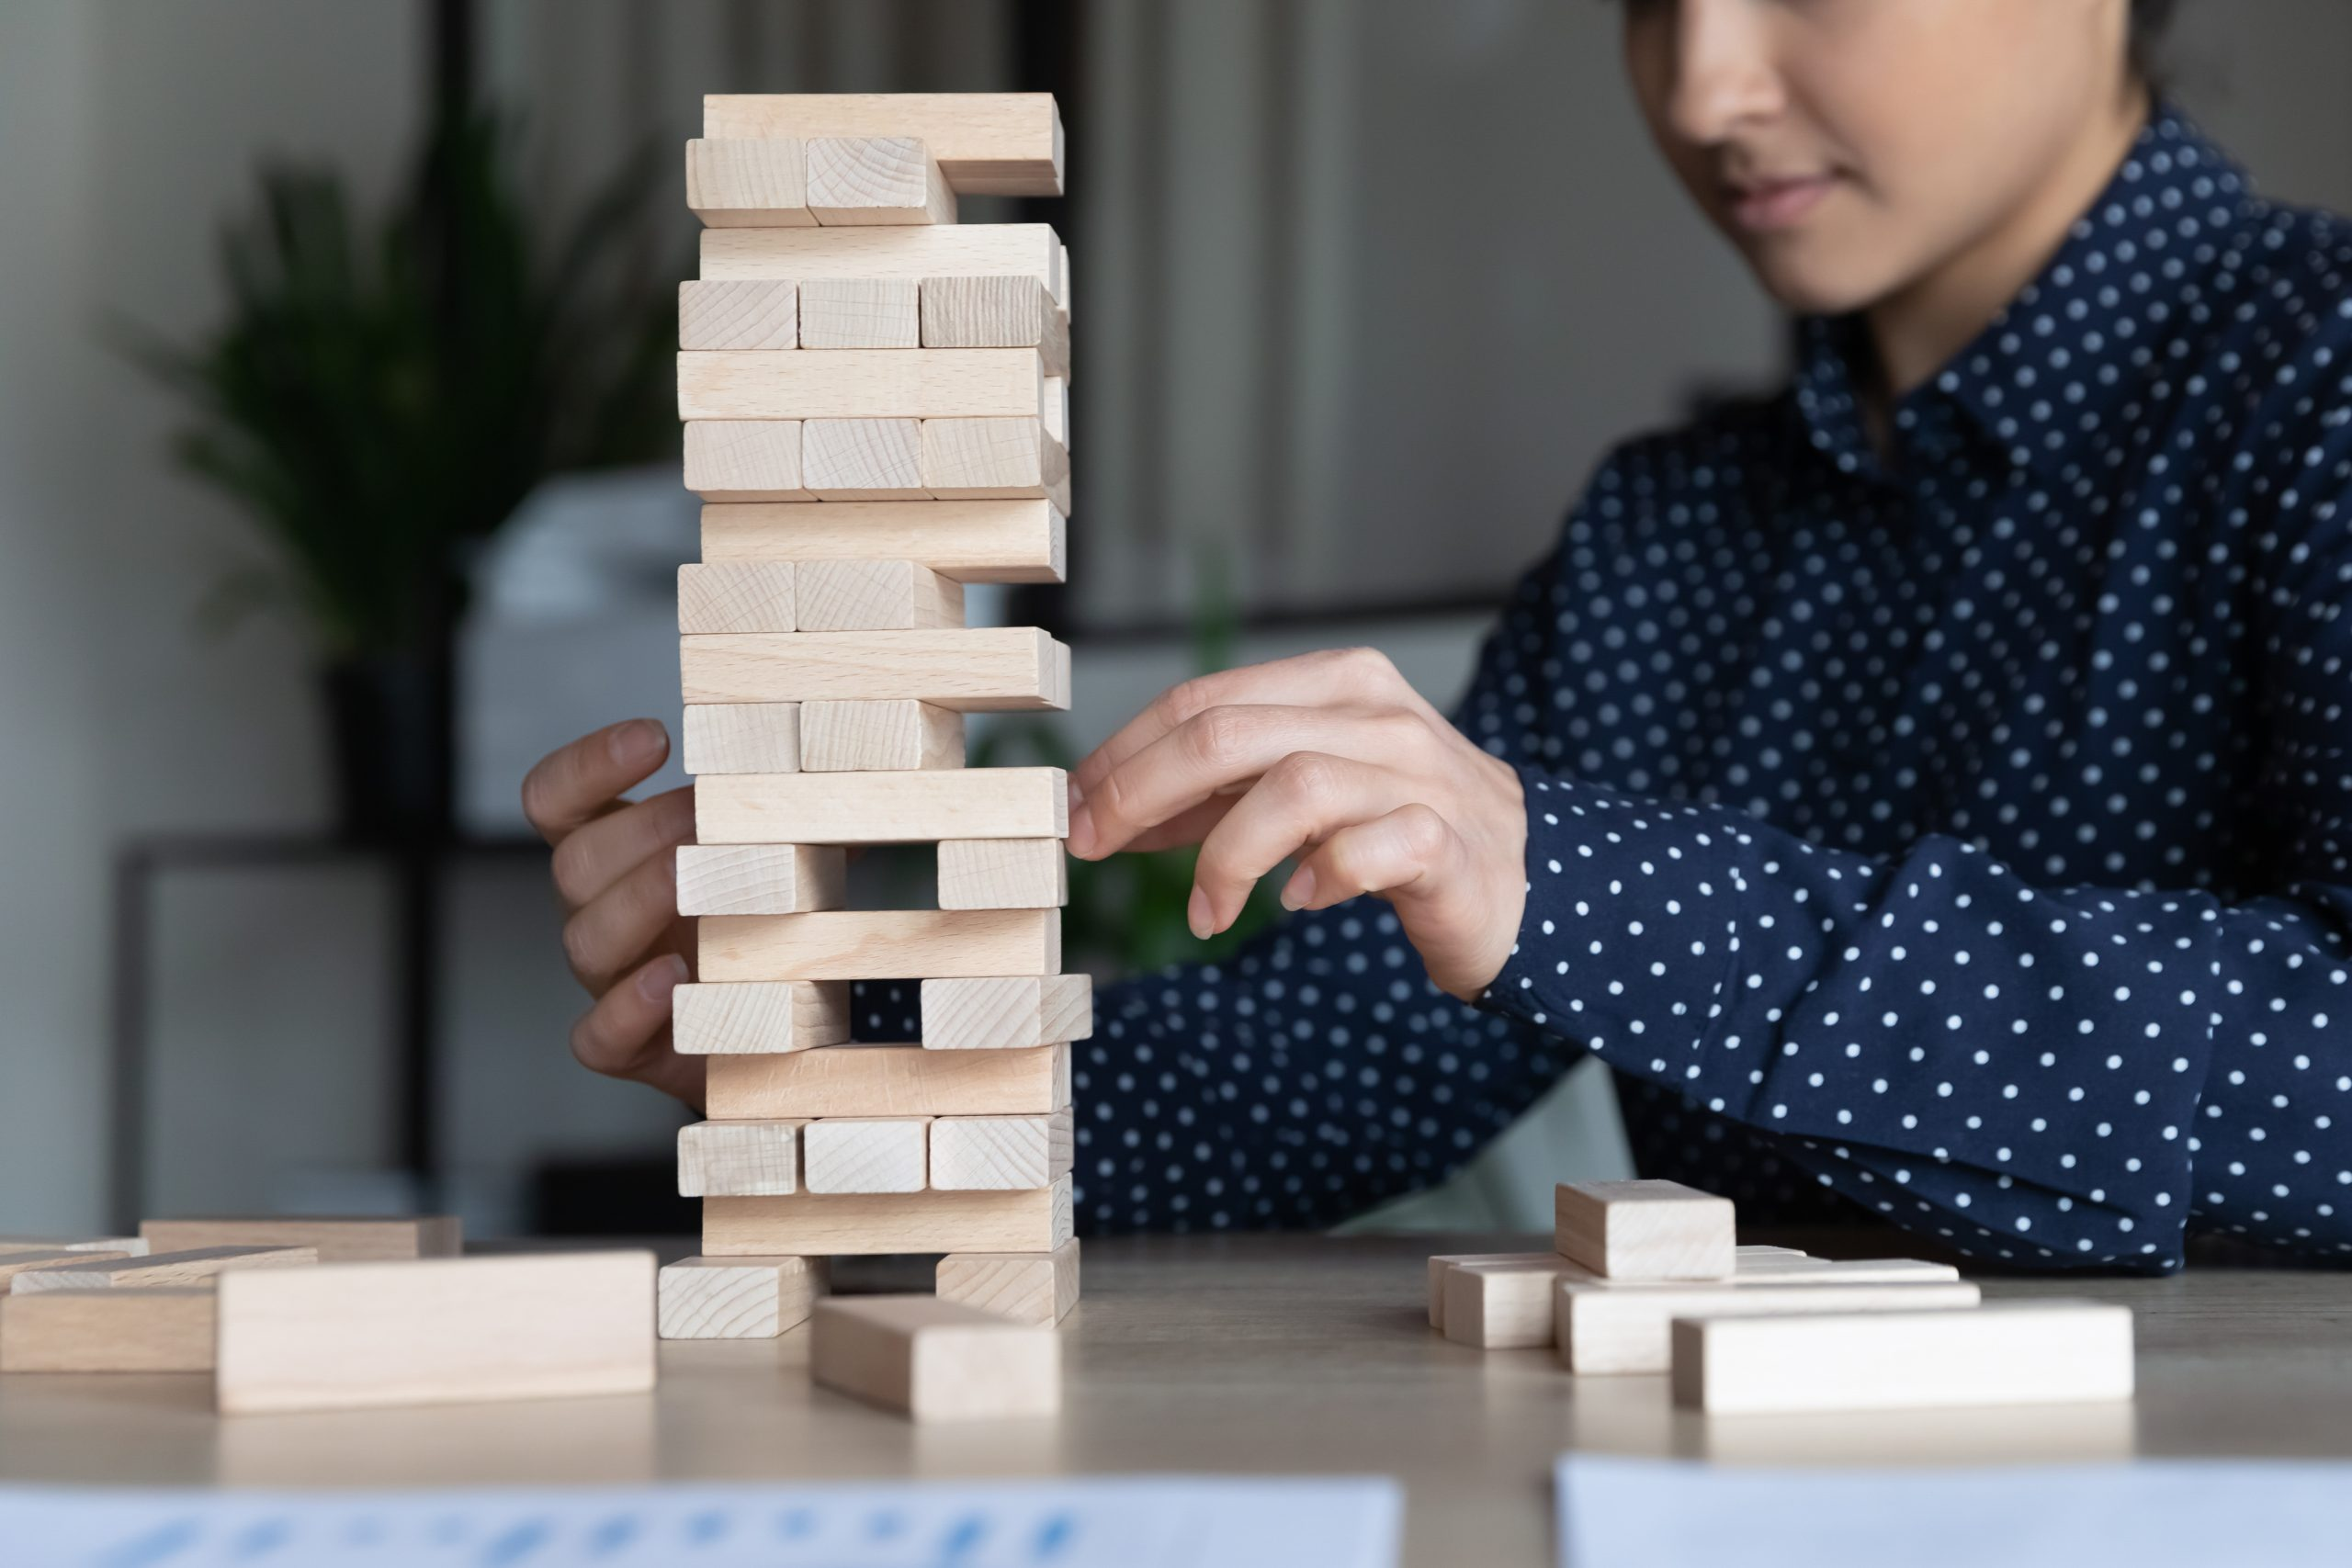 Indian businesswoman sitting at workplace desk build tower of wooden blocks play game, apply skills and creative approach close up image. Improve precision, business strategic thinking concept